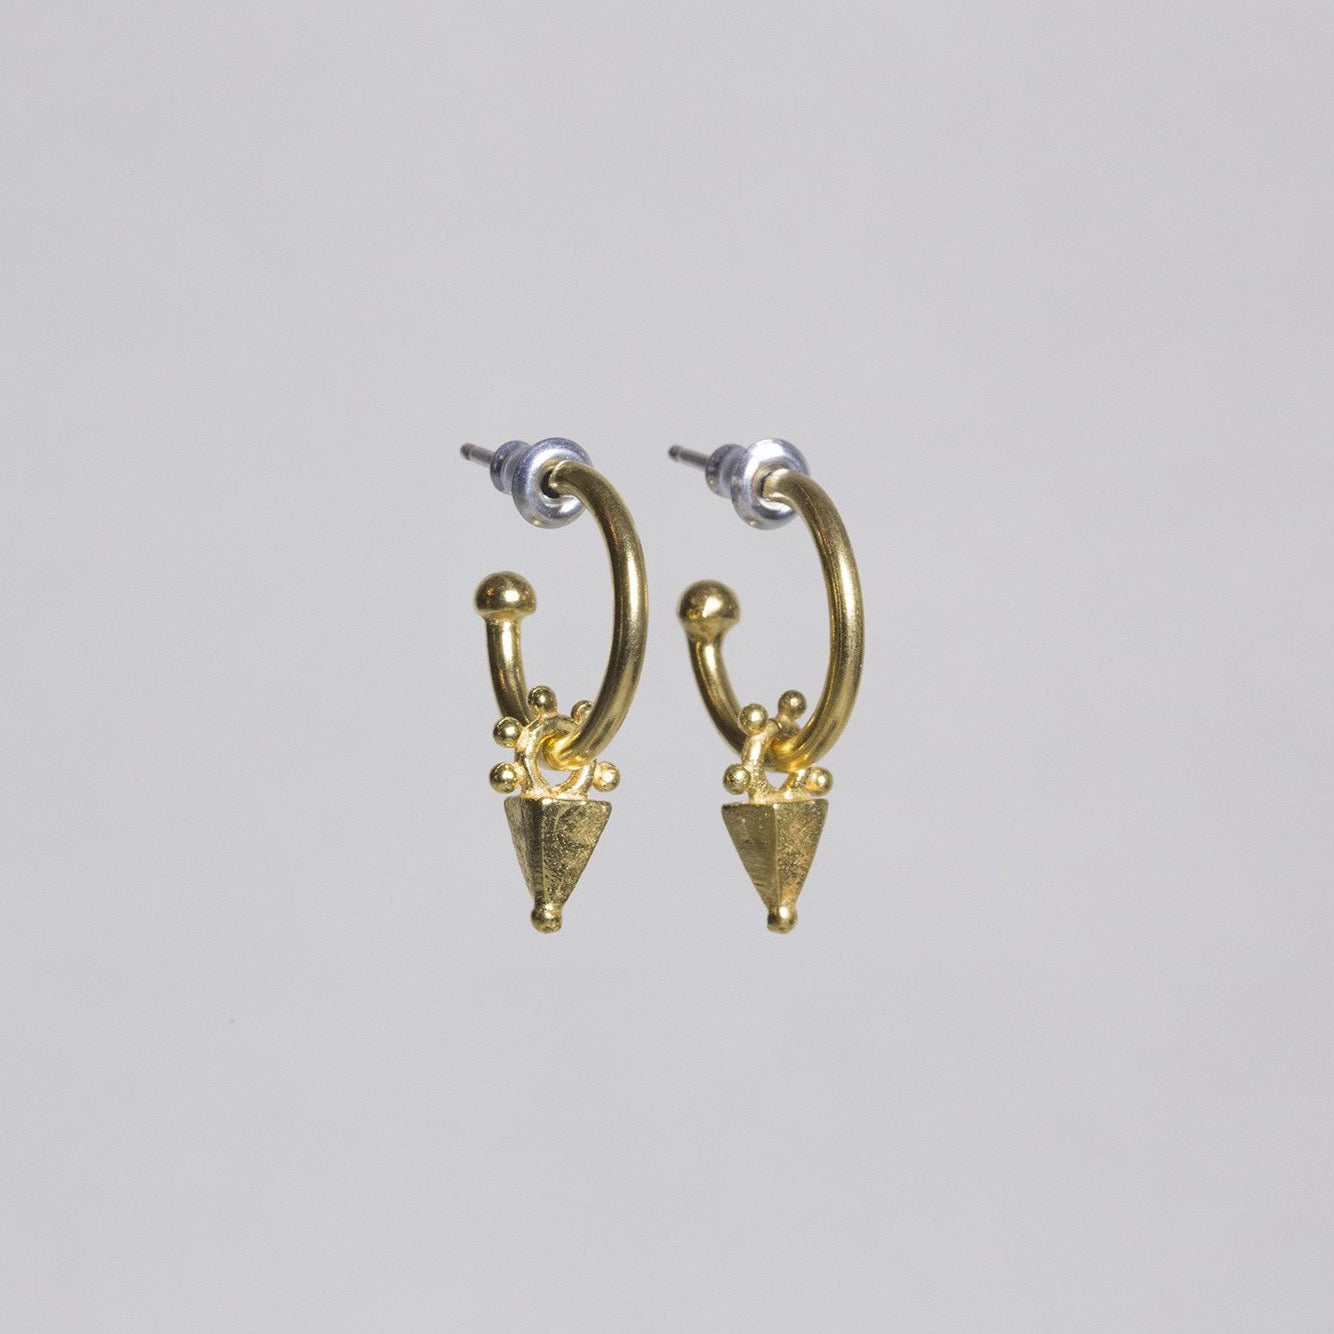 fantastic arrowhead-like charms hang off a hoop, all gold plated, these are a copy of ancient earrings